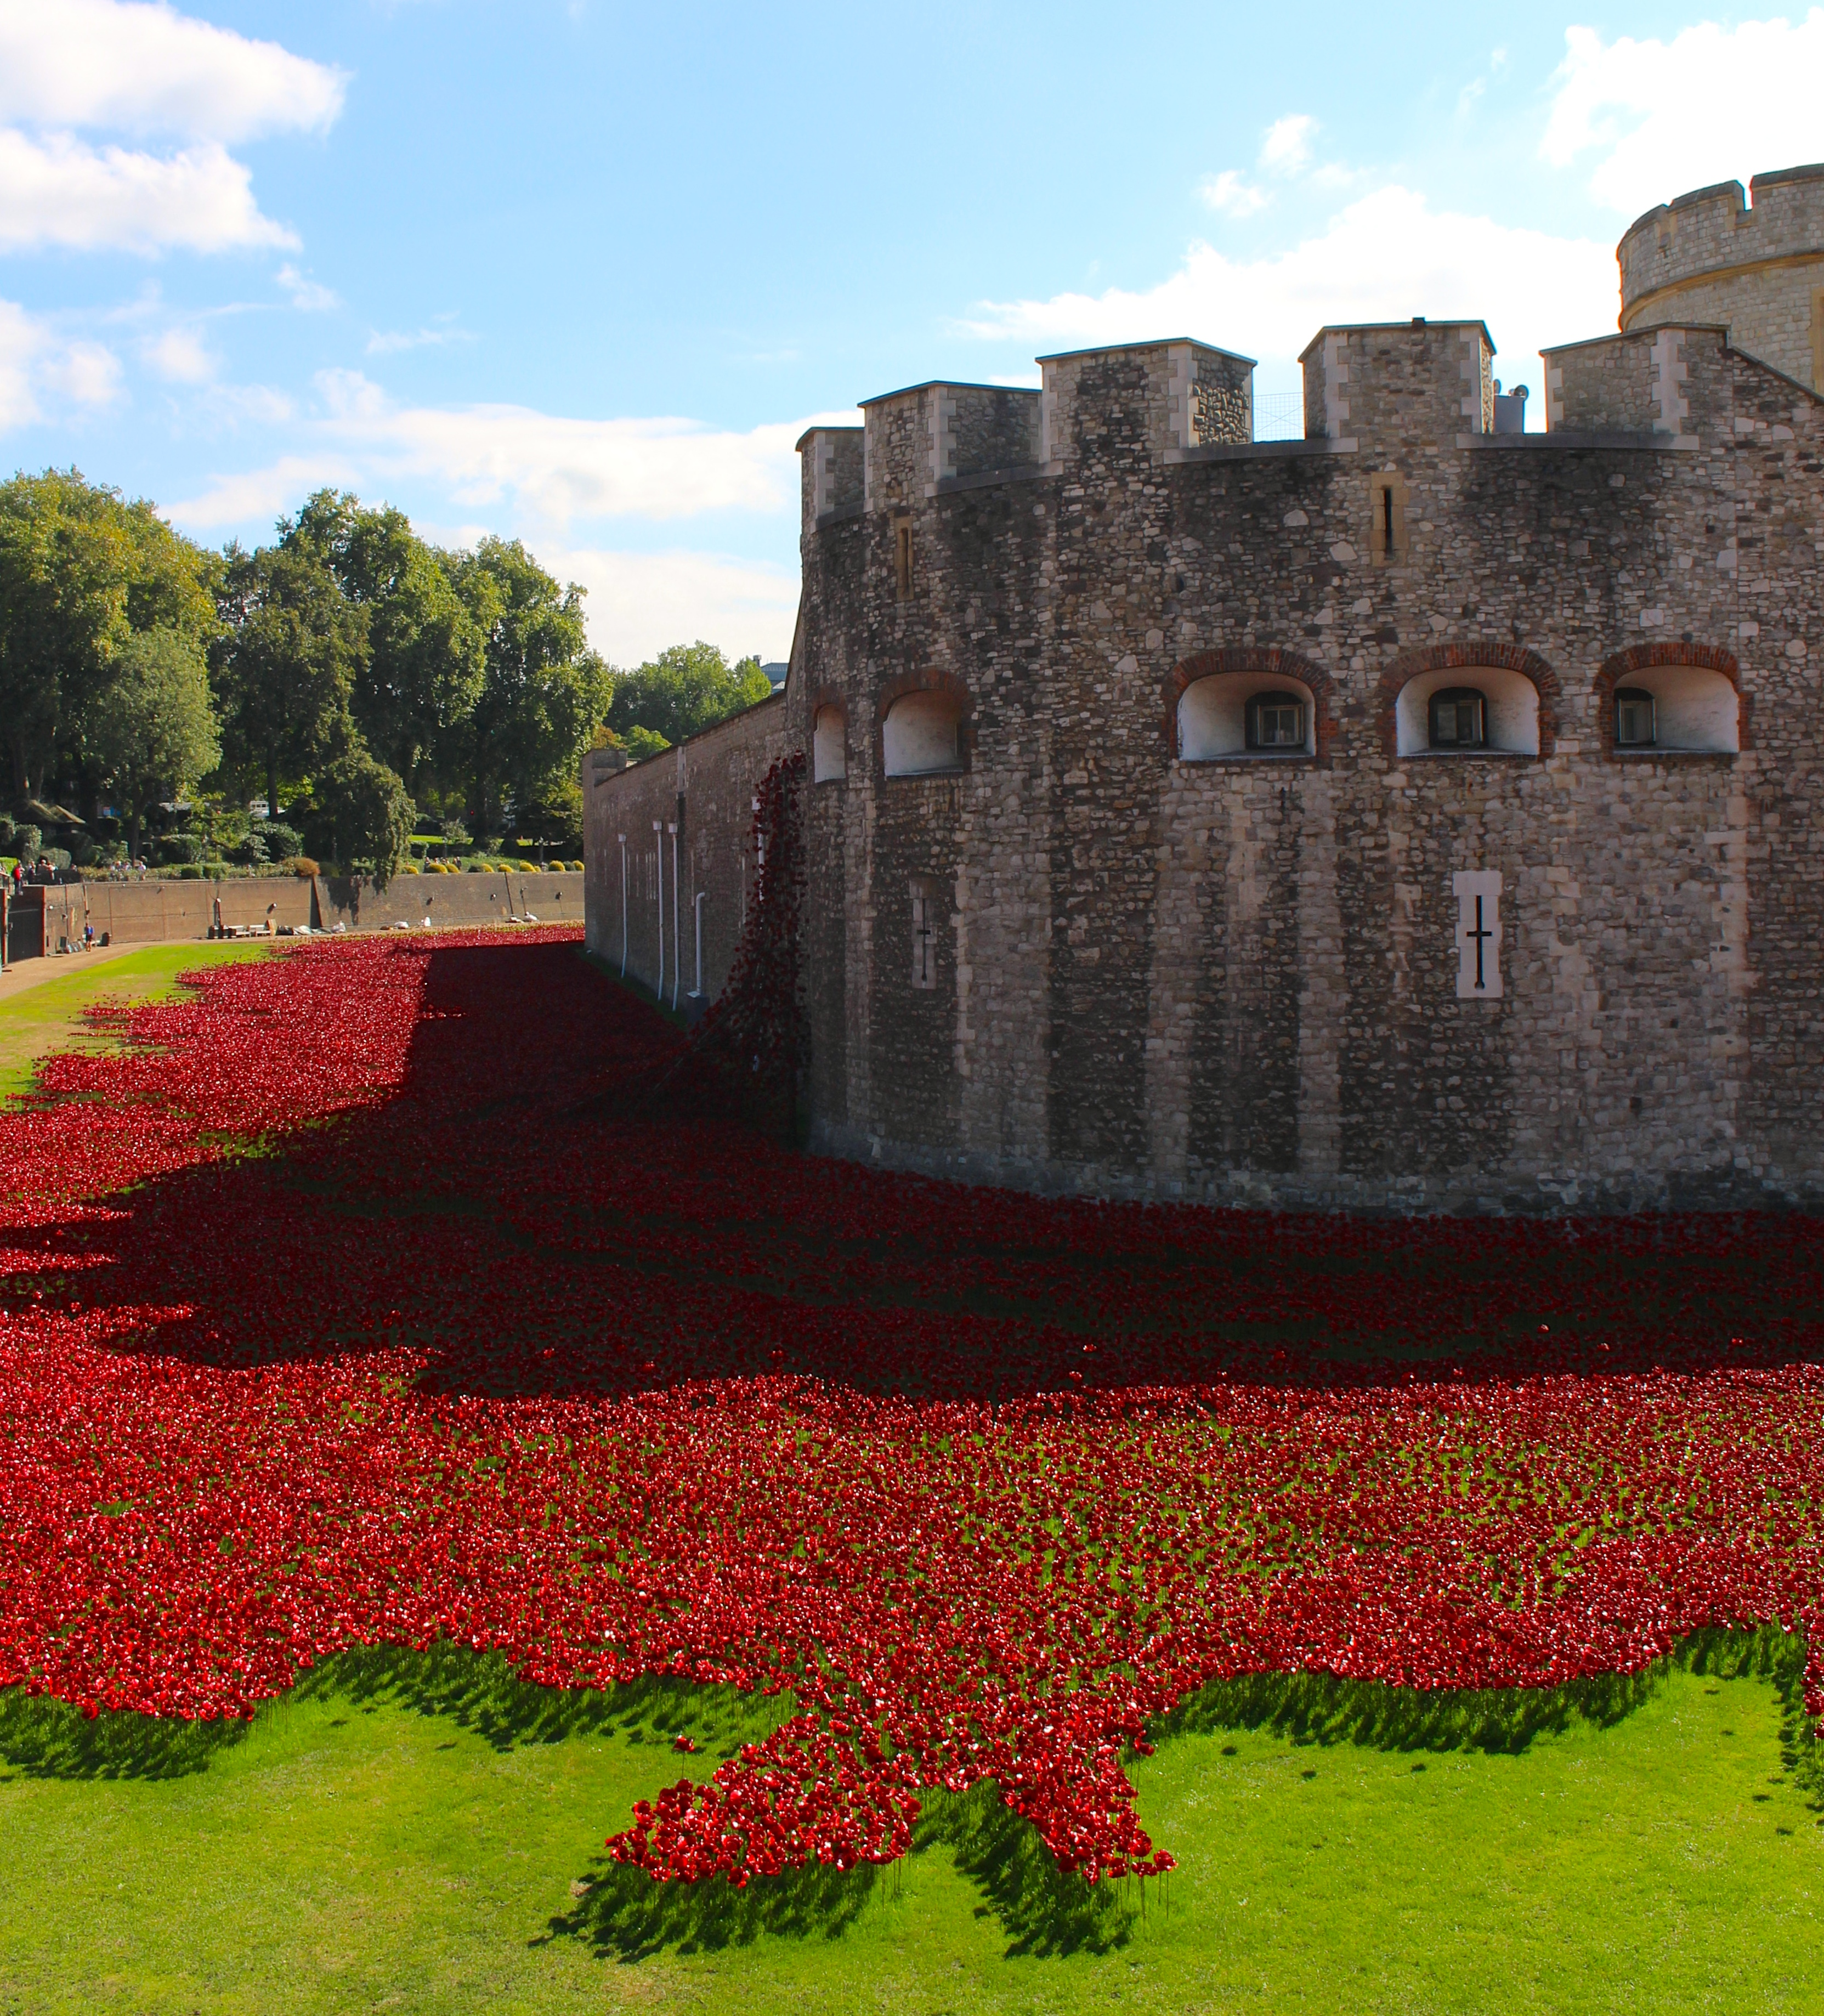 Tower of london remembers the first world war landscape eschewing formality the poppies are not arranged in orderly rows but instead undulate forming a sea of red within the moat they encase portions of the buycottarizona Images